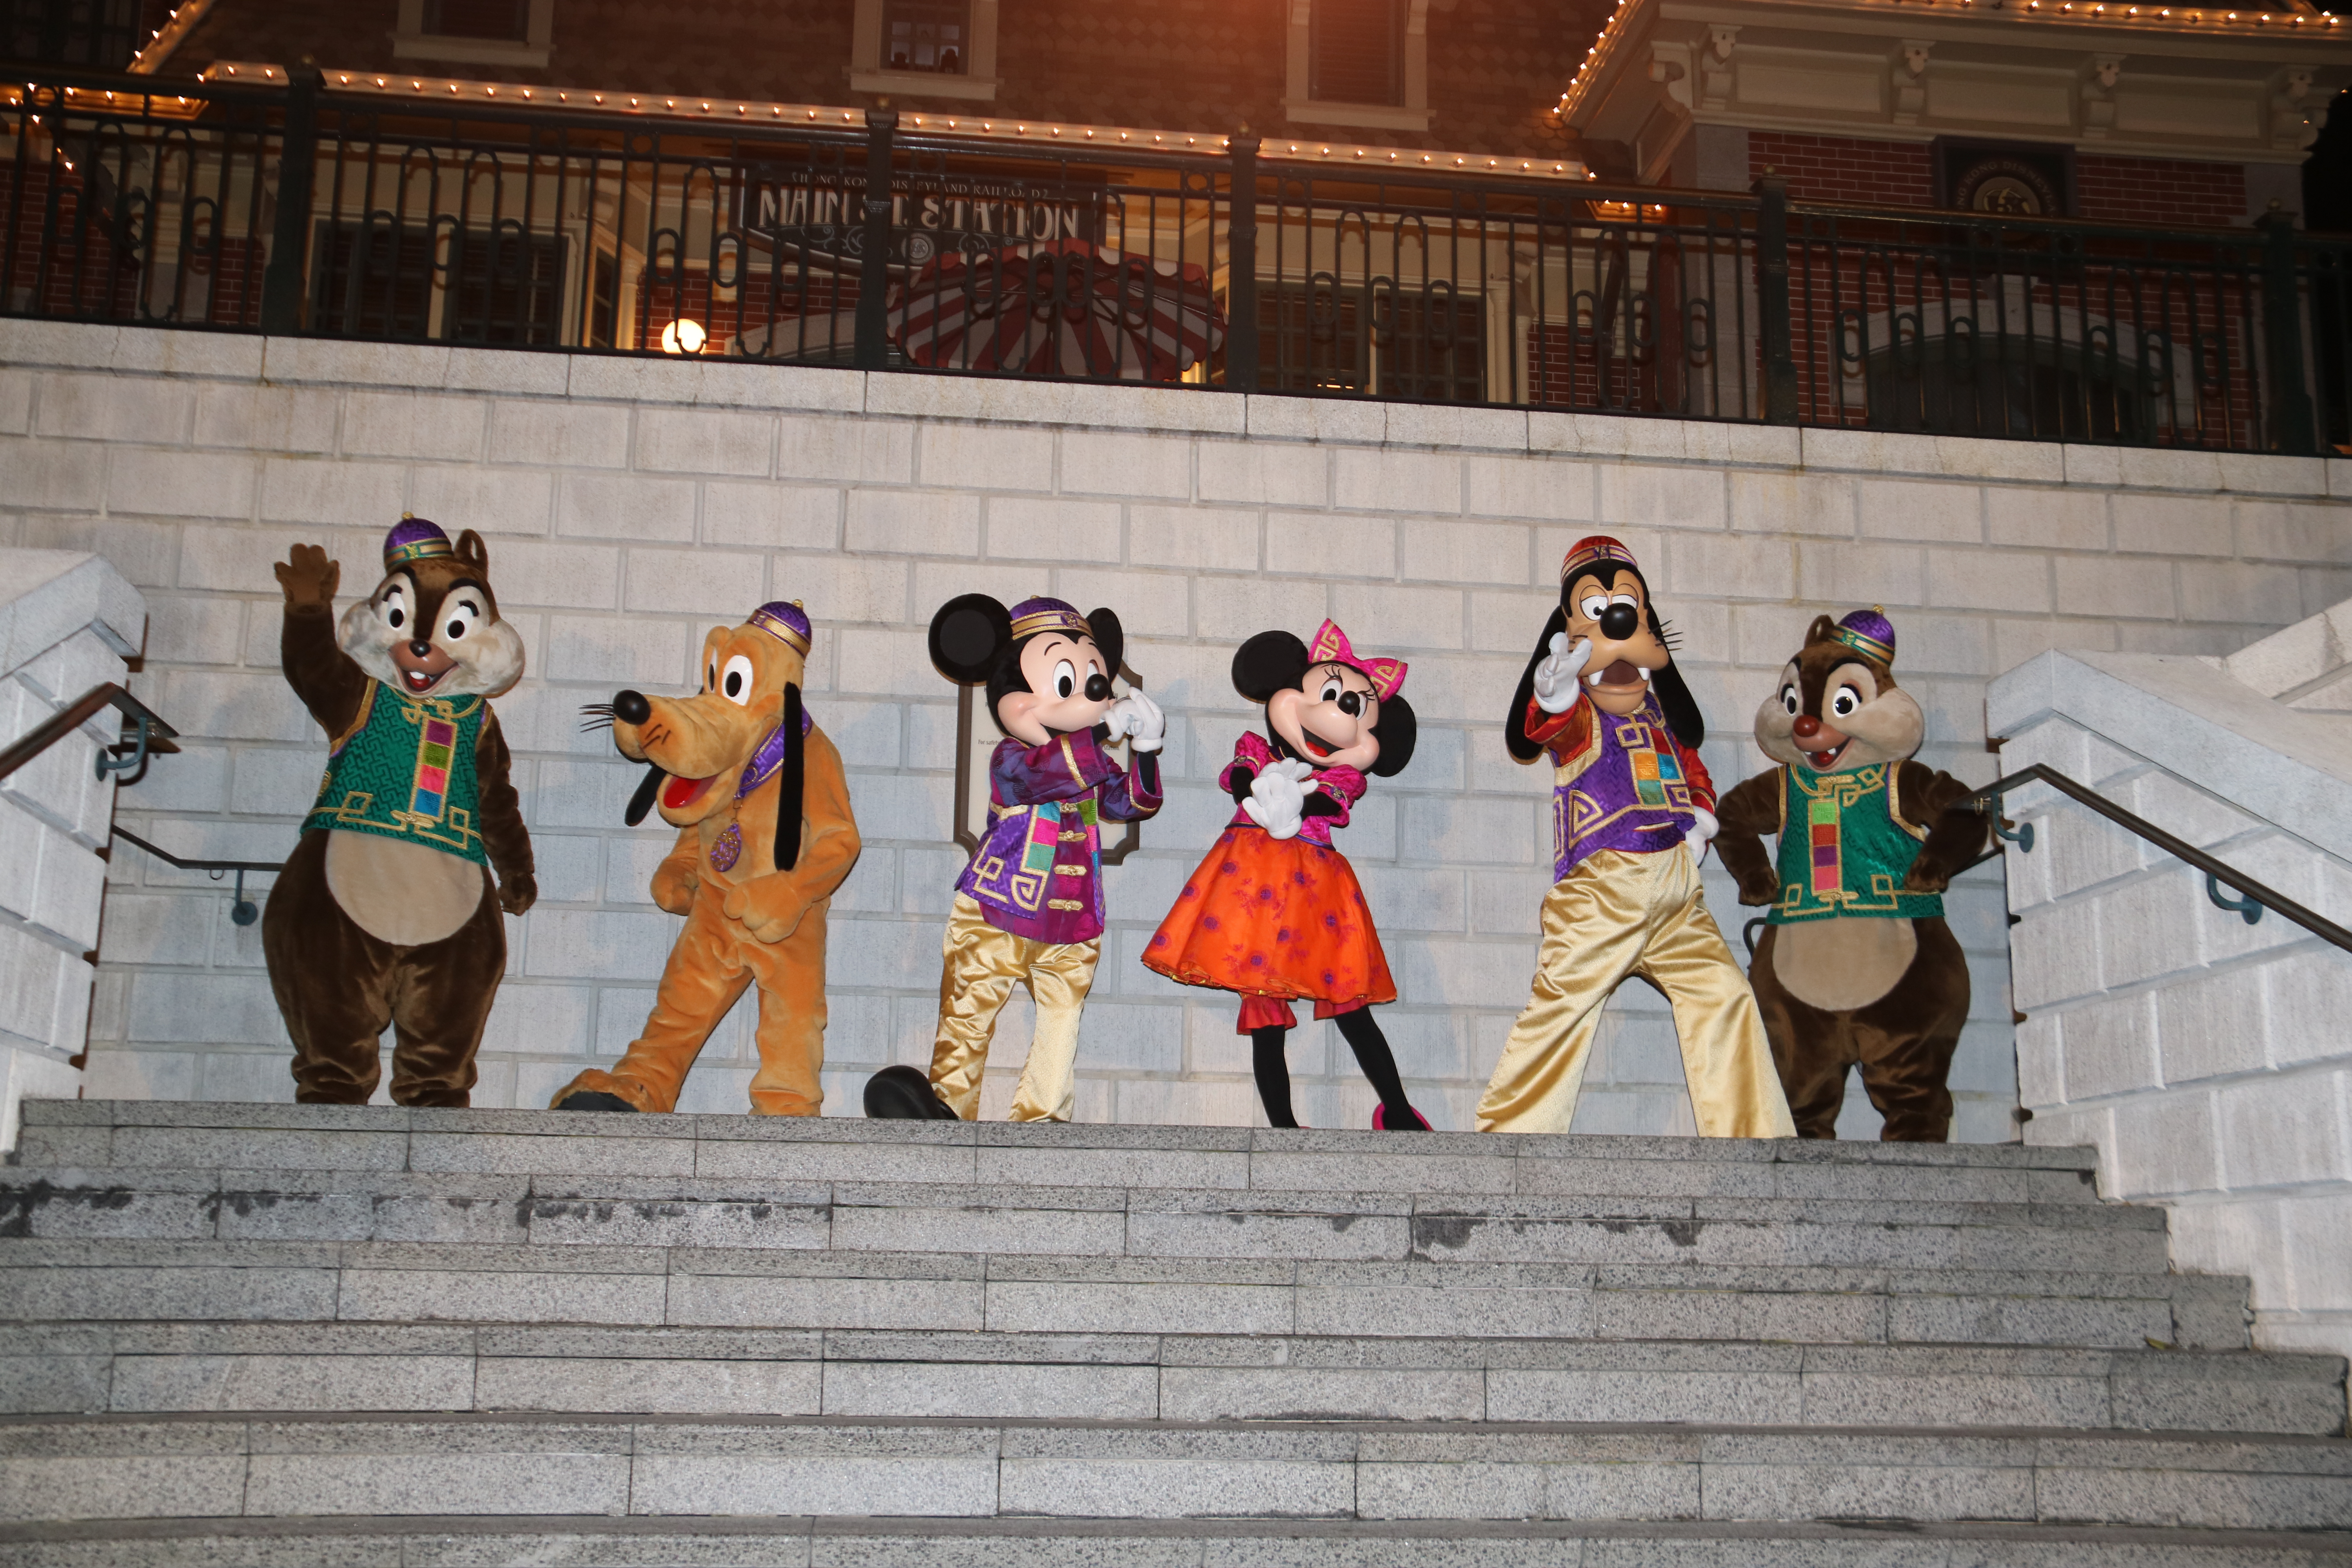 Mickey, Minnie, Goofy, Chip, and Dale